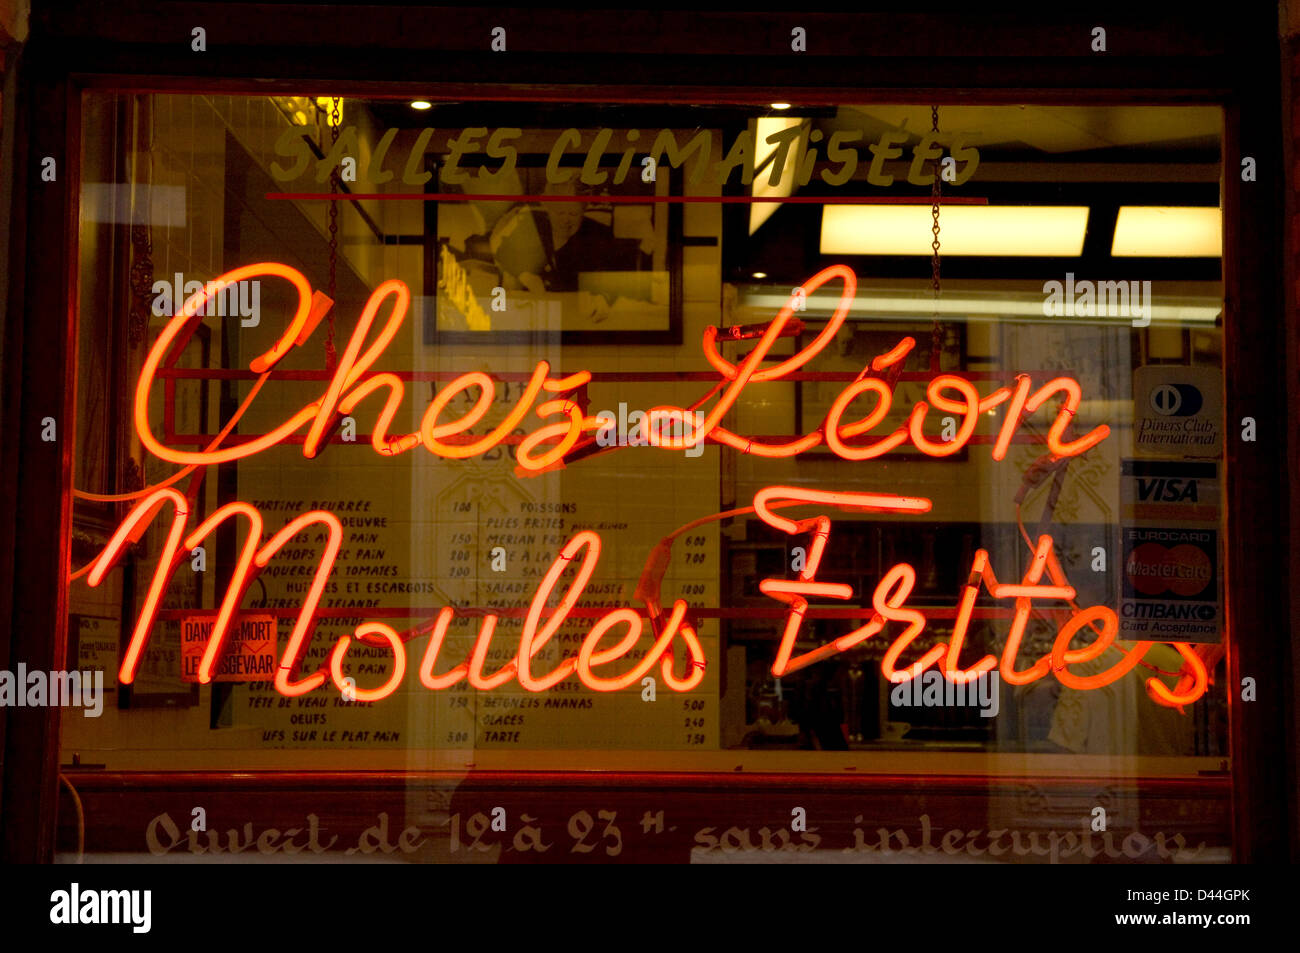 Neon sign for Chez Leon Moules Frites restaurant in Brussels, Belgium - Stock Image